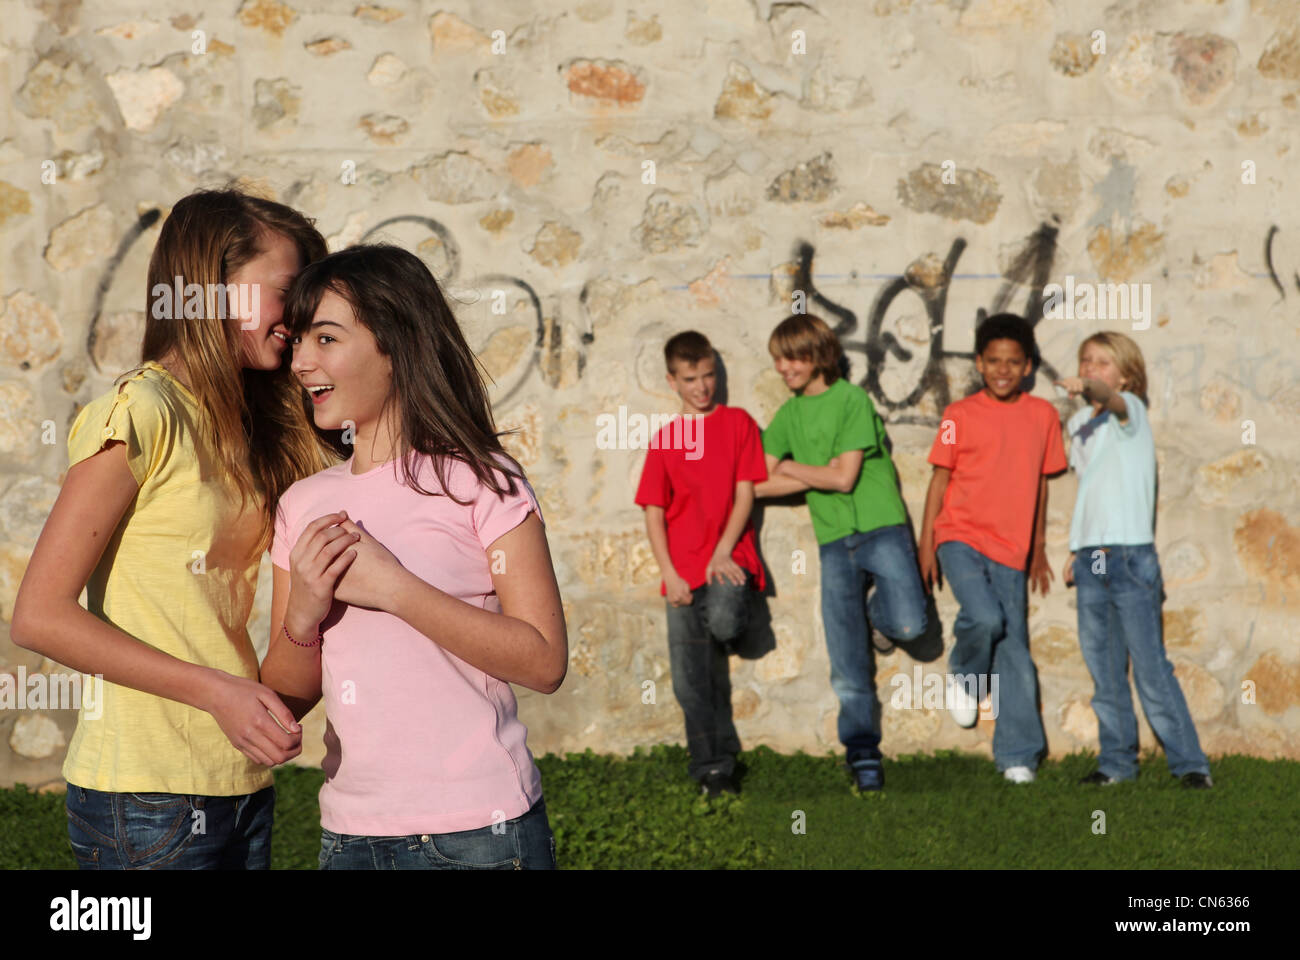 group of diverse teens hanging around out doors whispering secrets and flirting - Stock Image